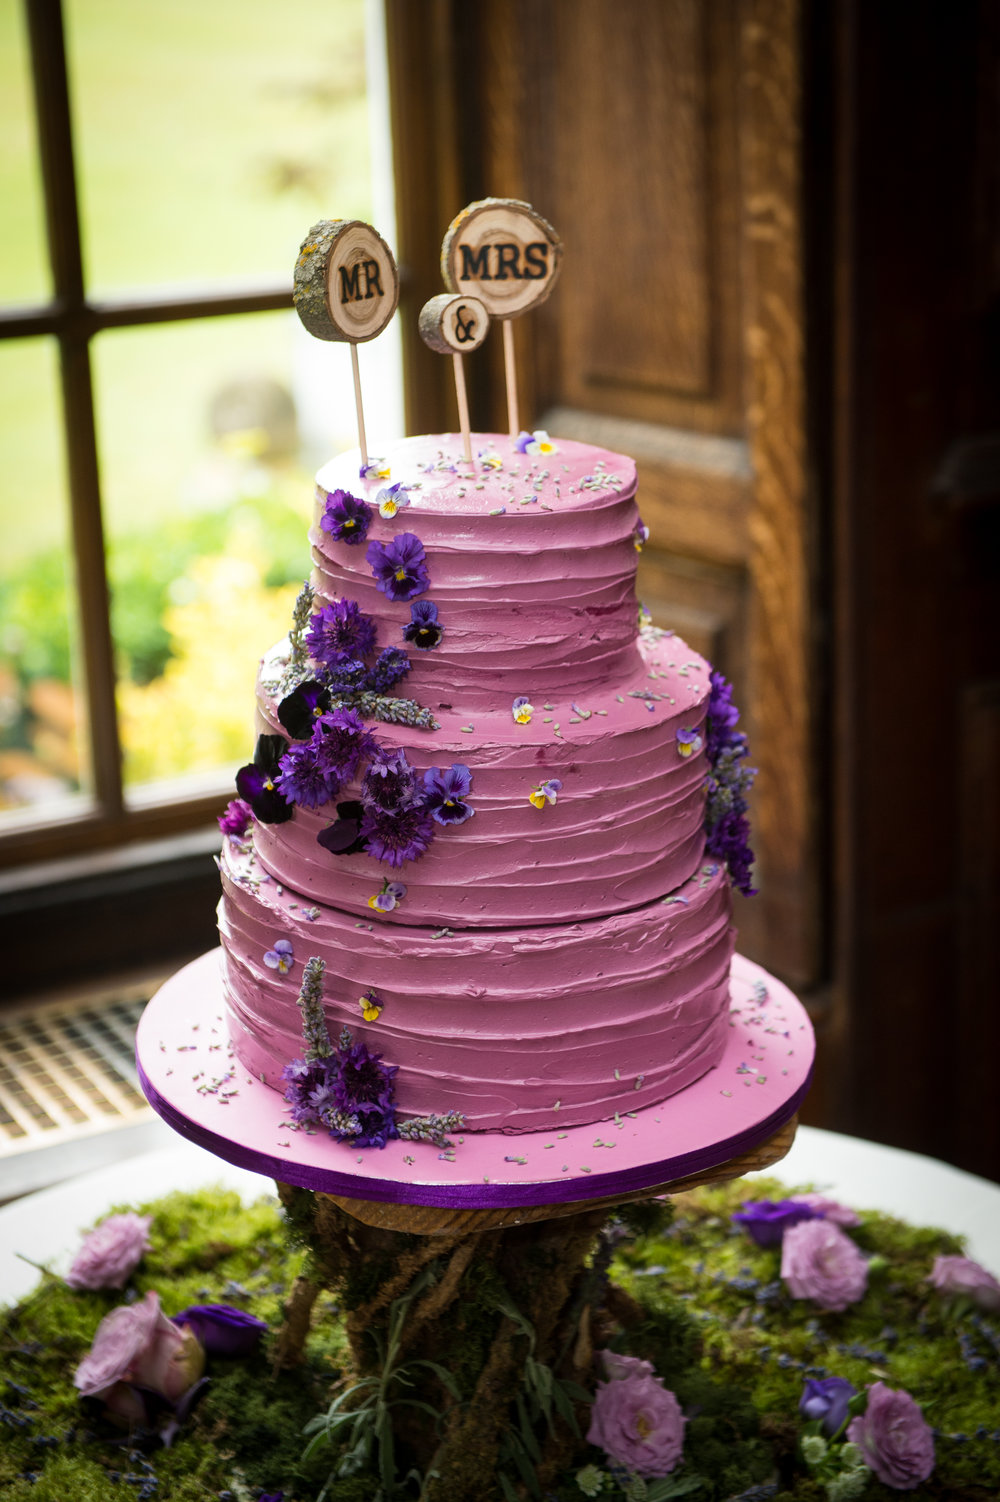 Secret Garden Inspired Buttercream Cake Complete with organic edible flowers, such as violets, violas, cornflowers and lavender. Make a statement with this earthy and whimsical wedding cake. Serve 65+ £360